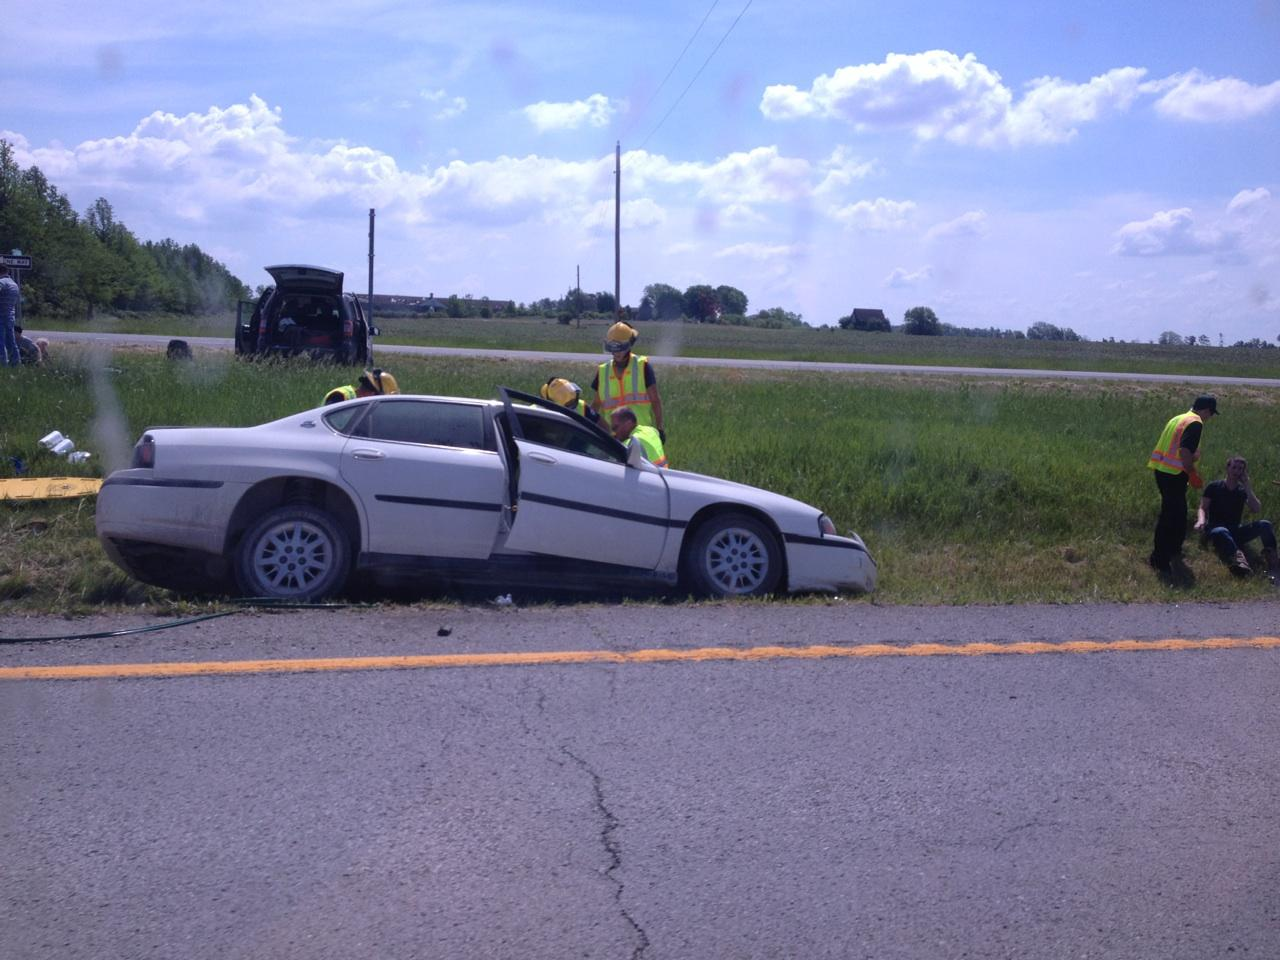 Minor injury reported after car goes off road in Johnson County.